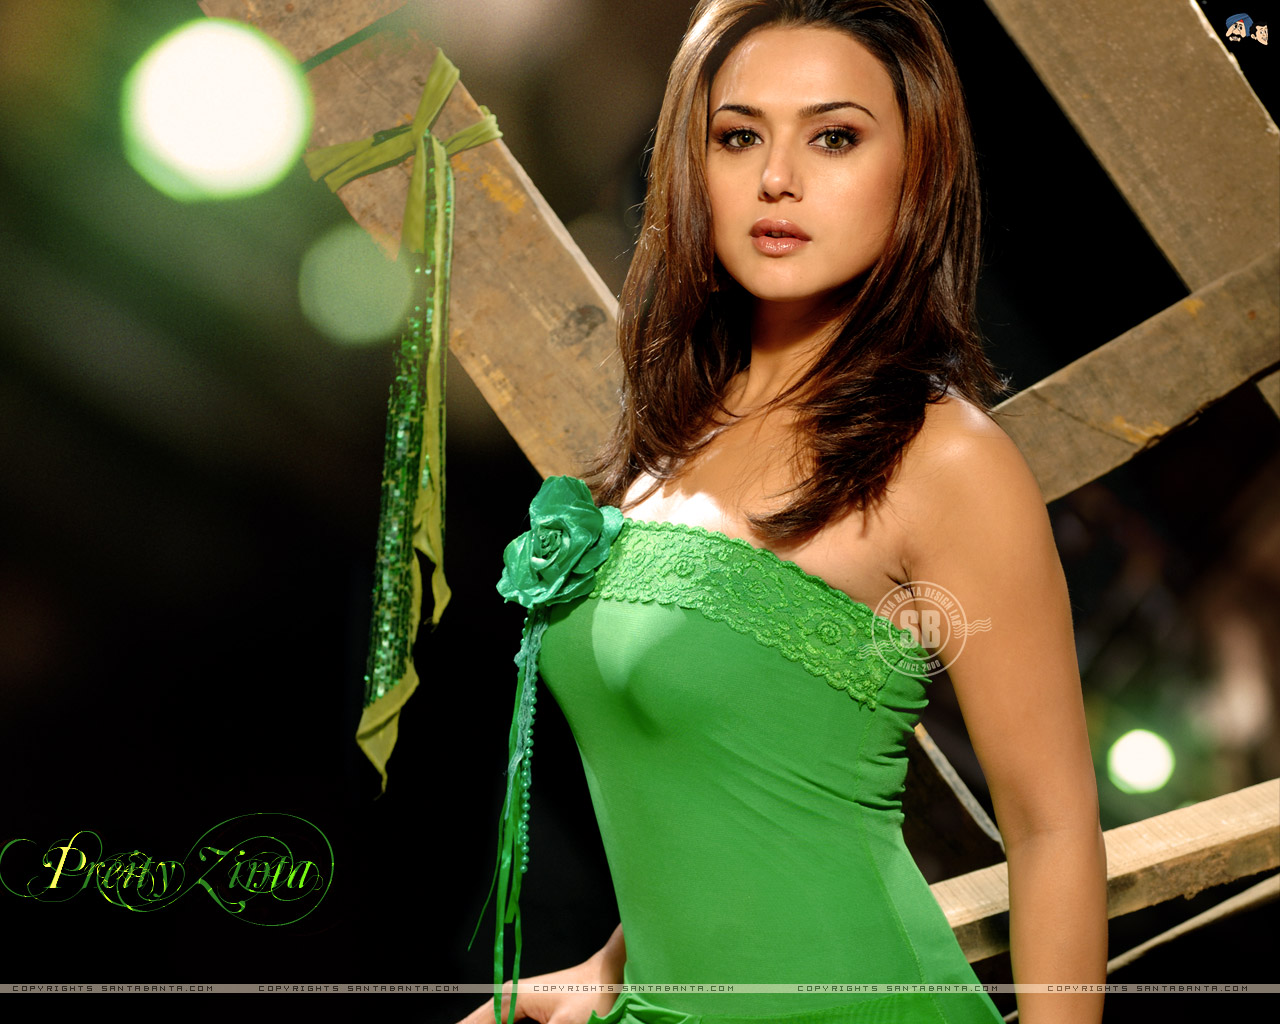 Hot Desi Girls Pics Nude Indian Girls and Bhabhi Pictures Preity zinta hot photo shoot video